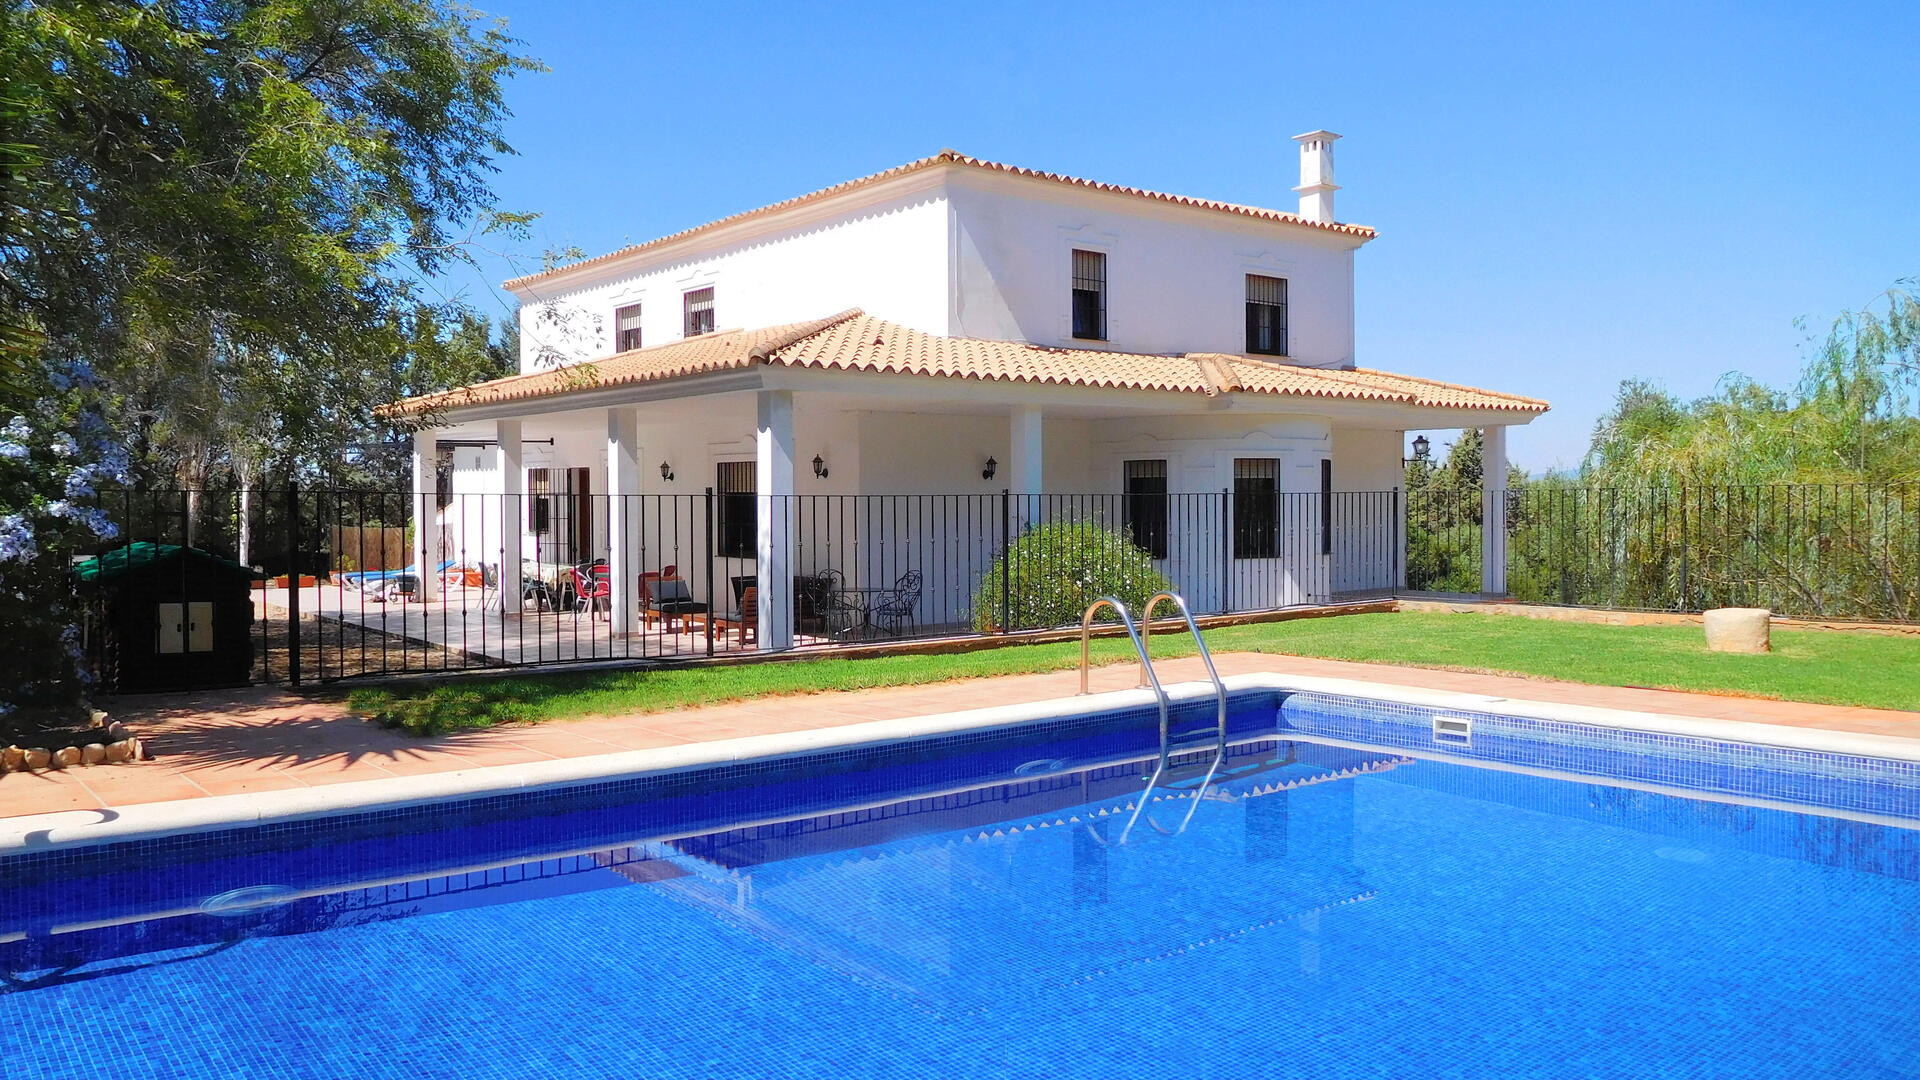 6 Bedroom Private villa in Mainland, Spain